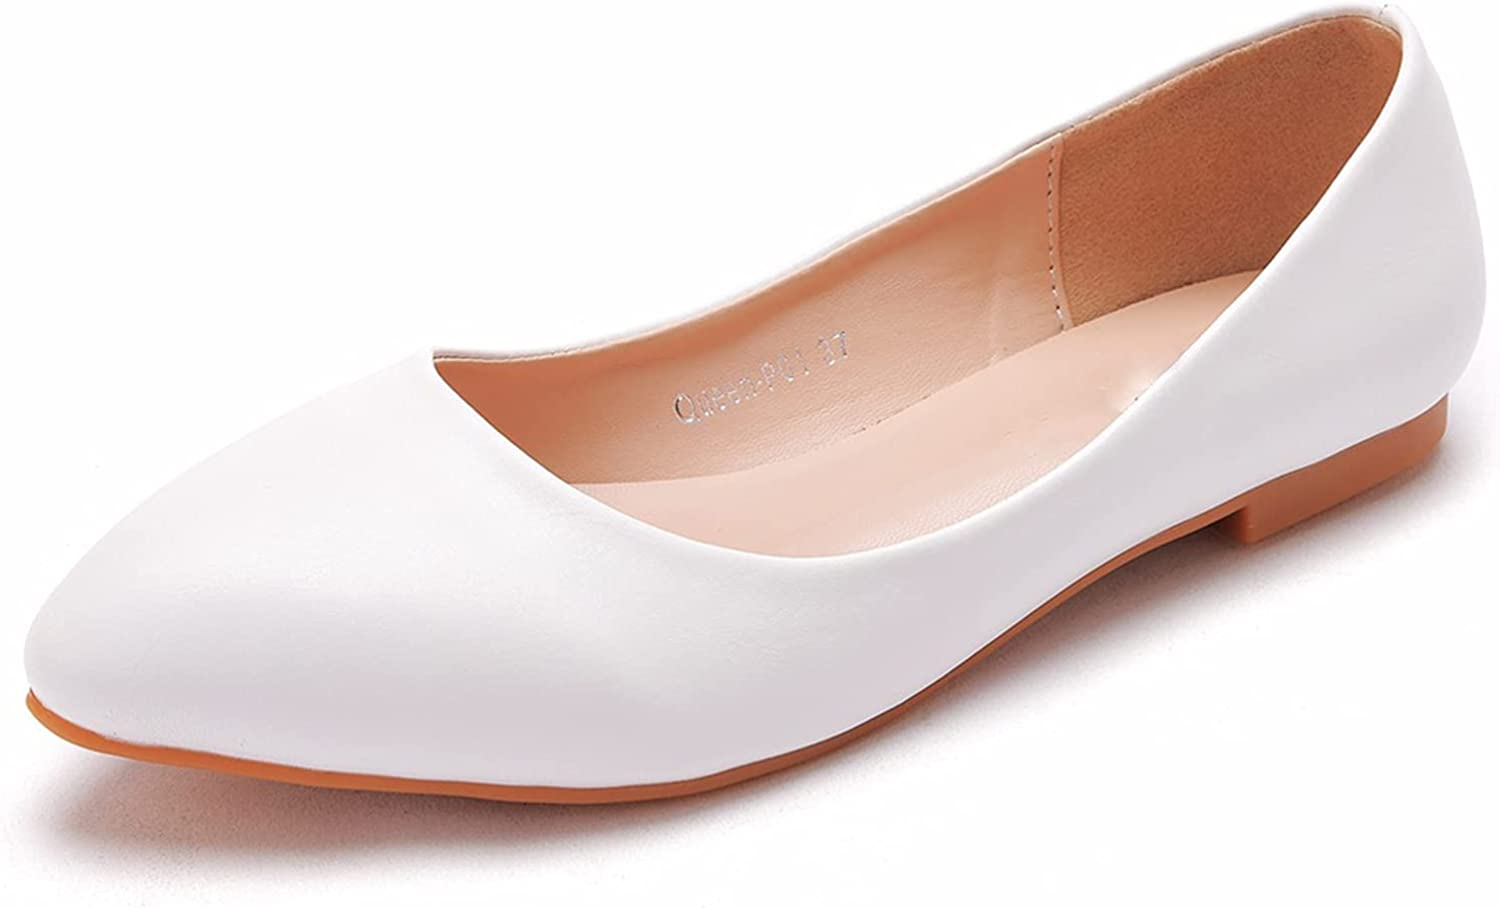 AORUIDA Womens Bridal At the price of surprise Shoes Pointed Elega Toe Ballet Flats Satin SEAL limited product